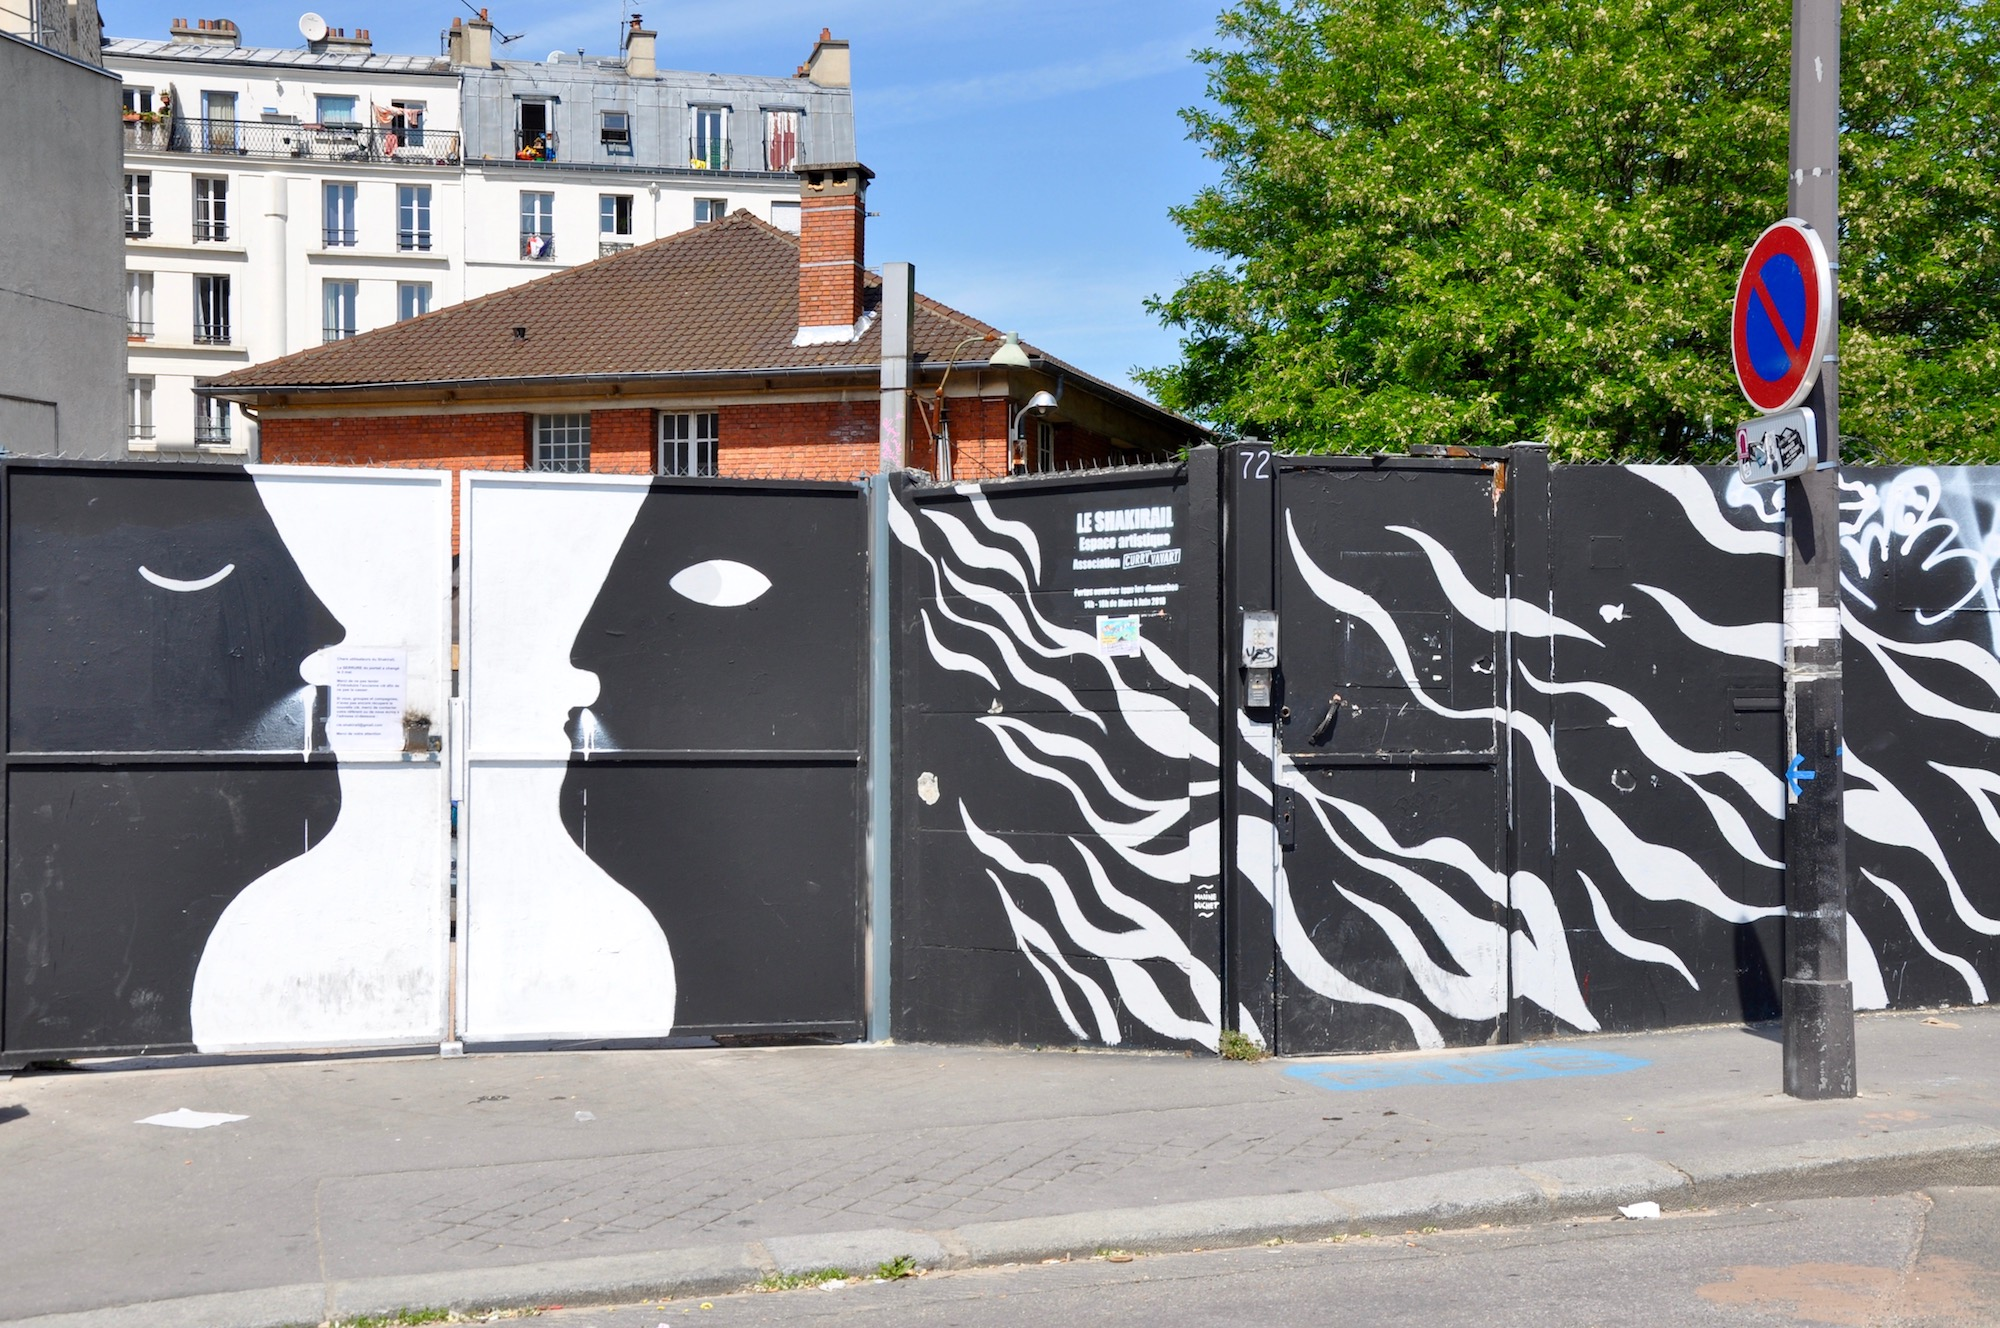 HiP Paris Blog discovers the many artist squats in Paris like the Shakirail with its black and white street art outside.